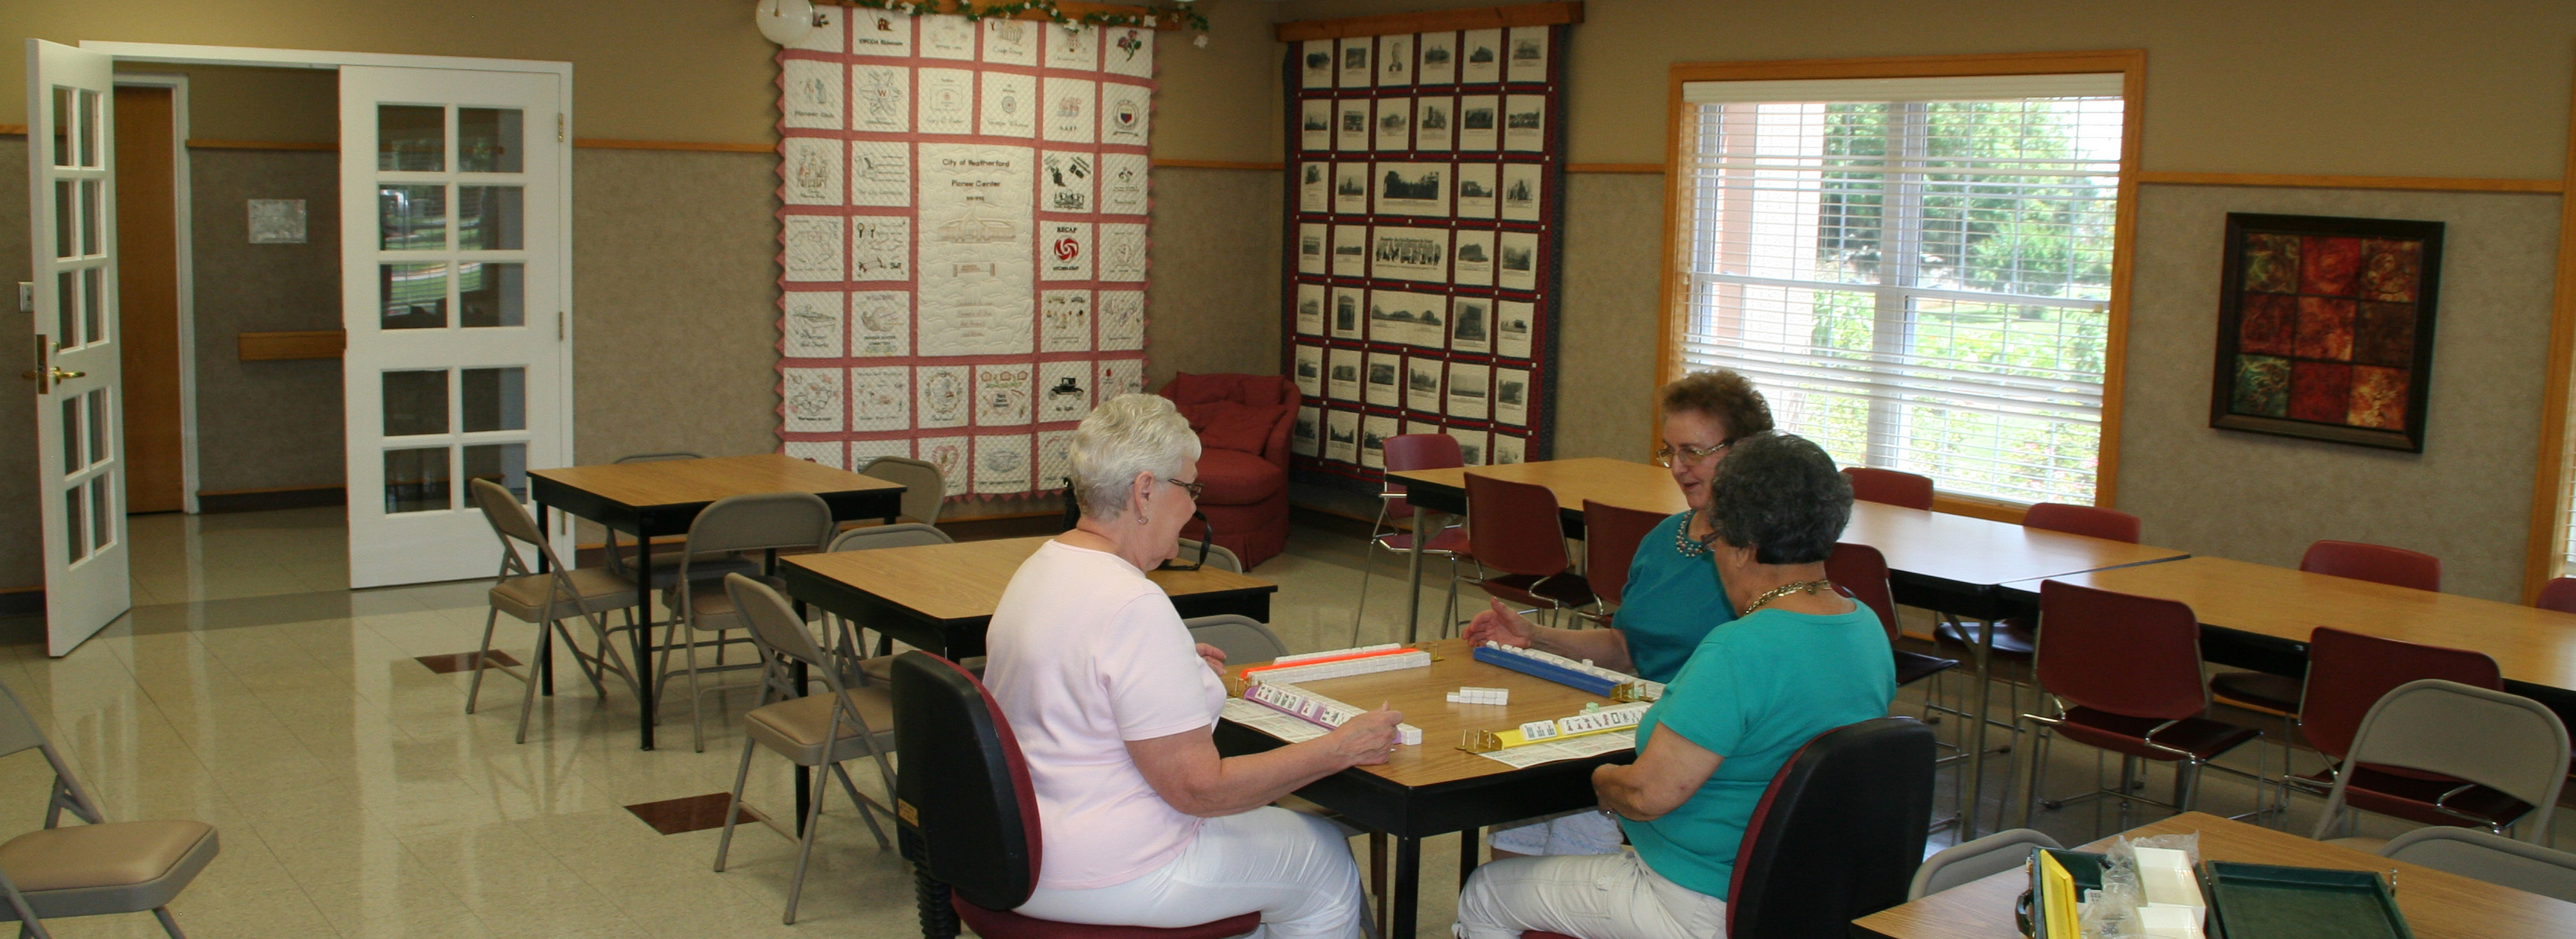 women playing games in the activity room at the Pioneer Center